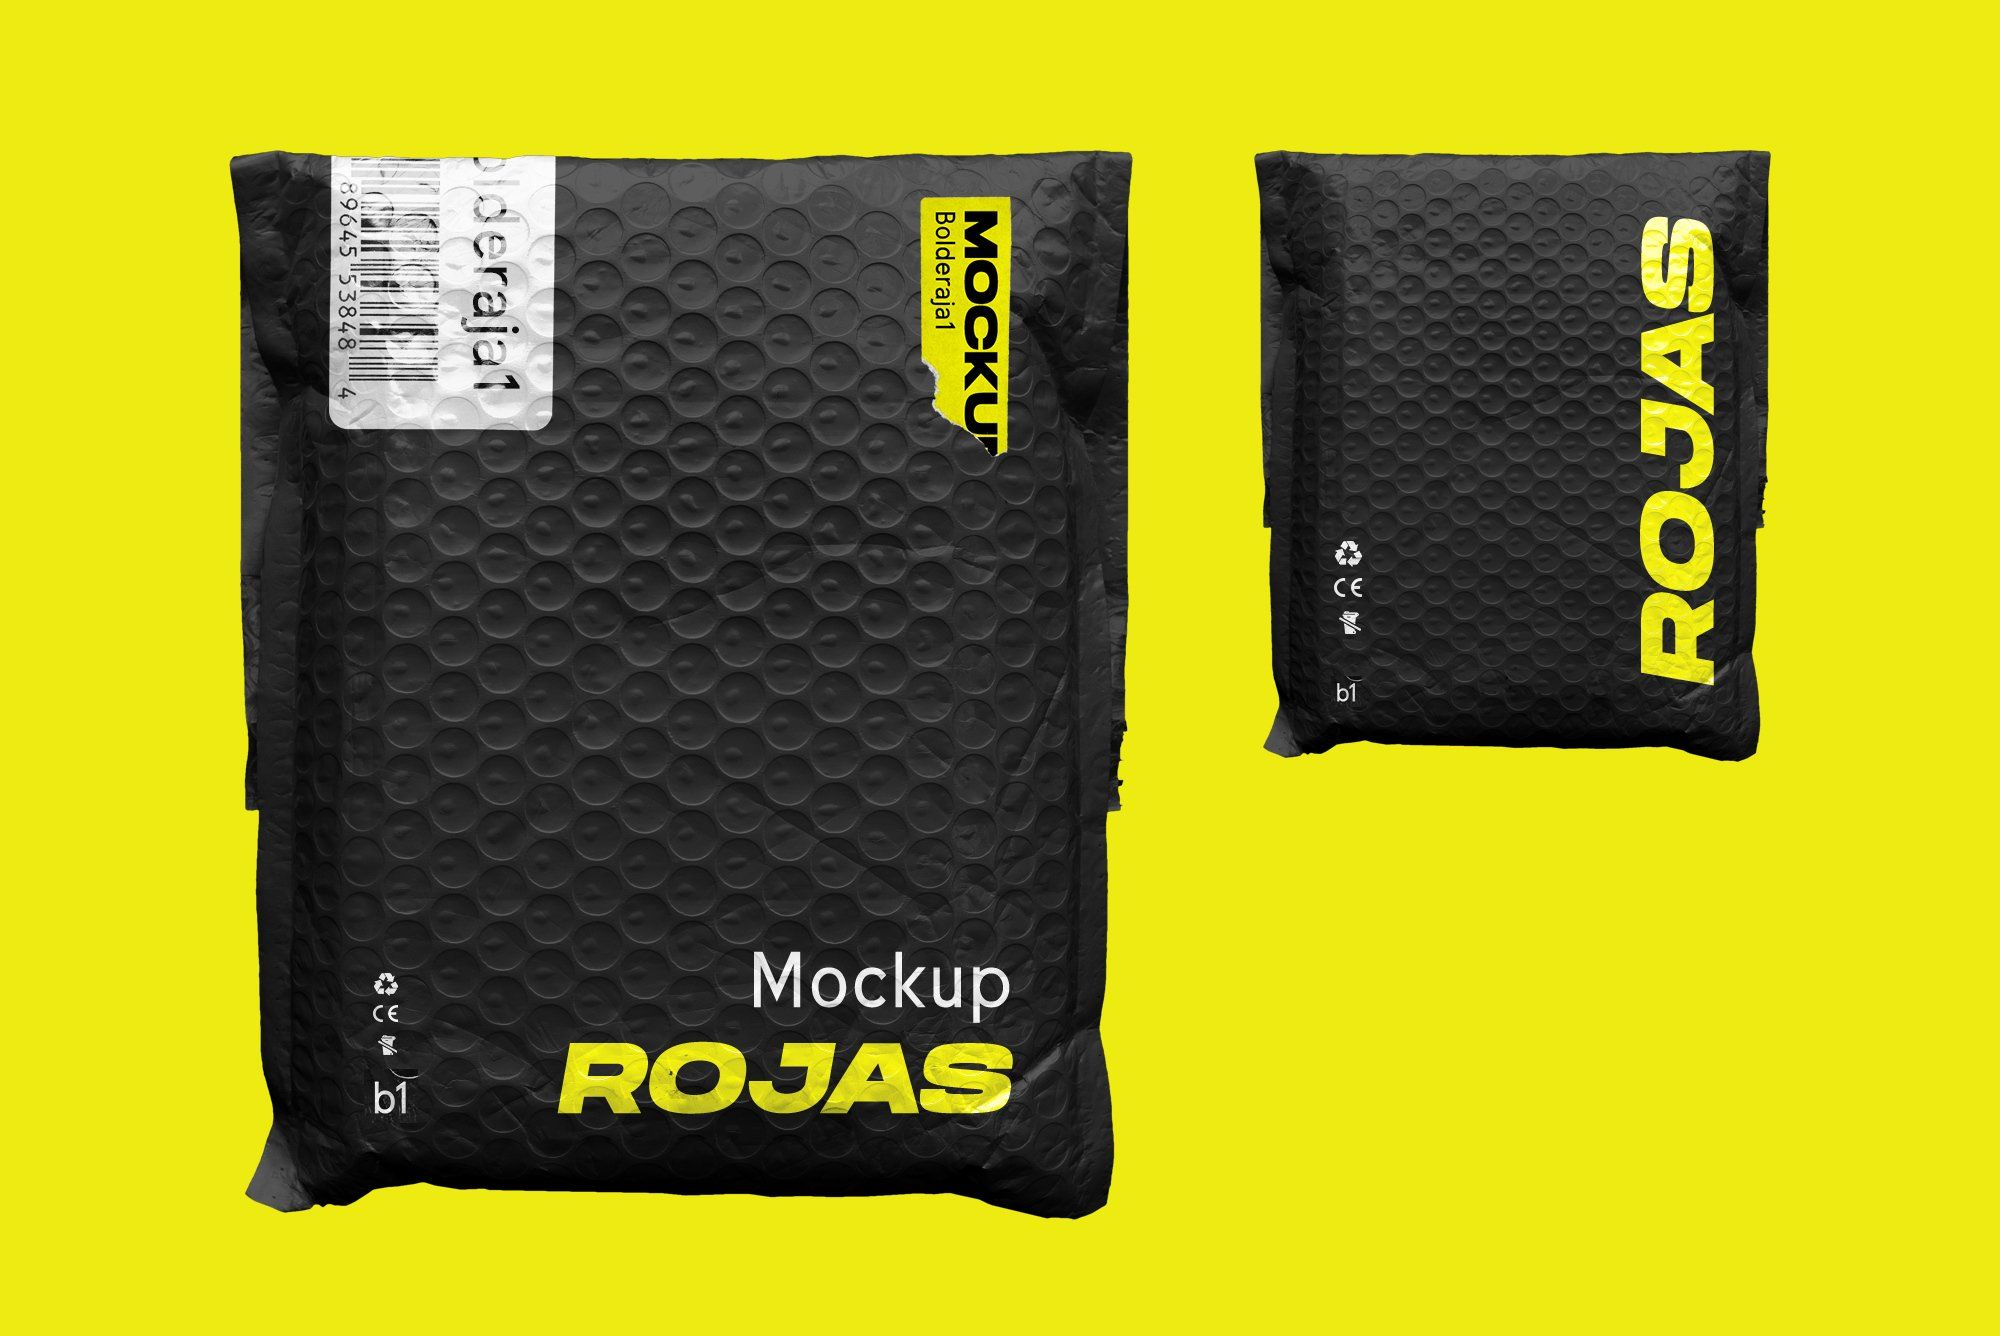 Download Bubble Bag Postage Mockup Rojas Sponsored Drag Software Place Workspace Ad Bubble Bag Postage Bags Bubble Wrap Packaging